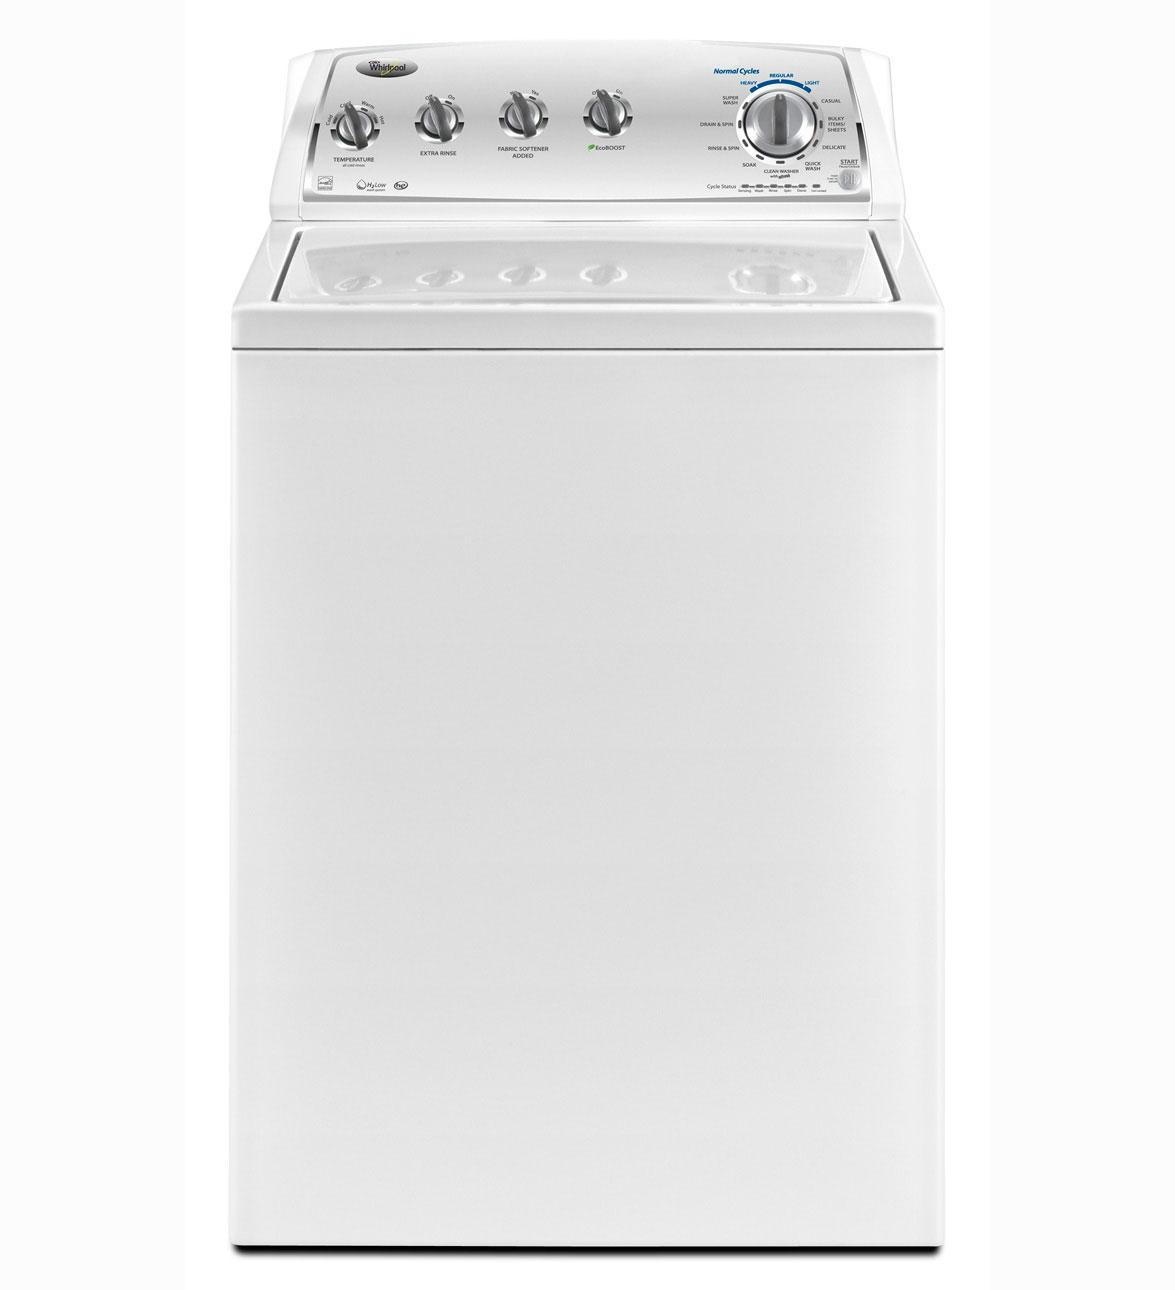 "Whirlpool WTW4950XW 27"" Top-Load Washer With 3.6 Cu. Ft"